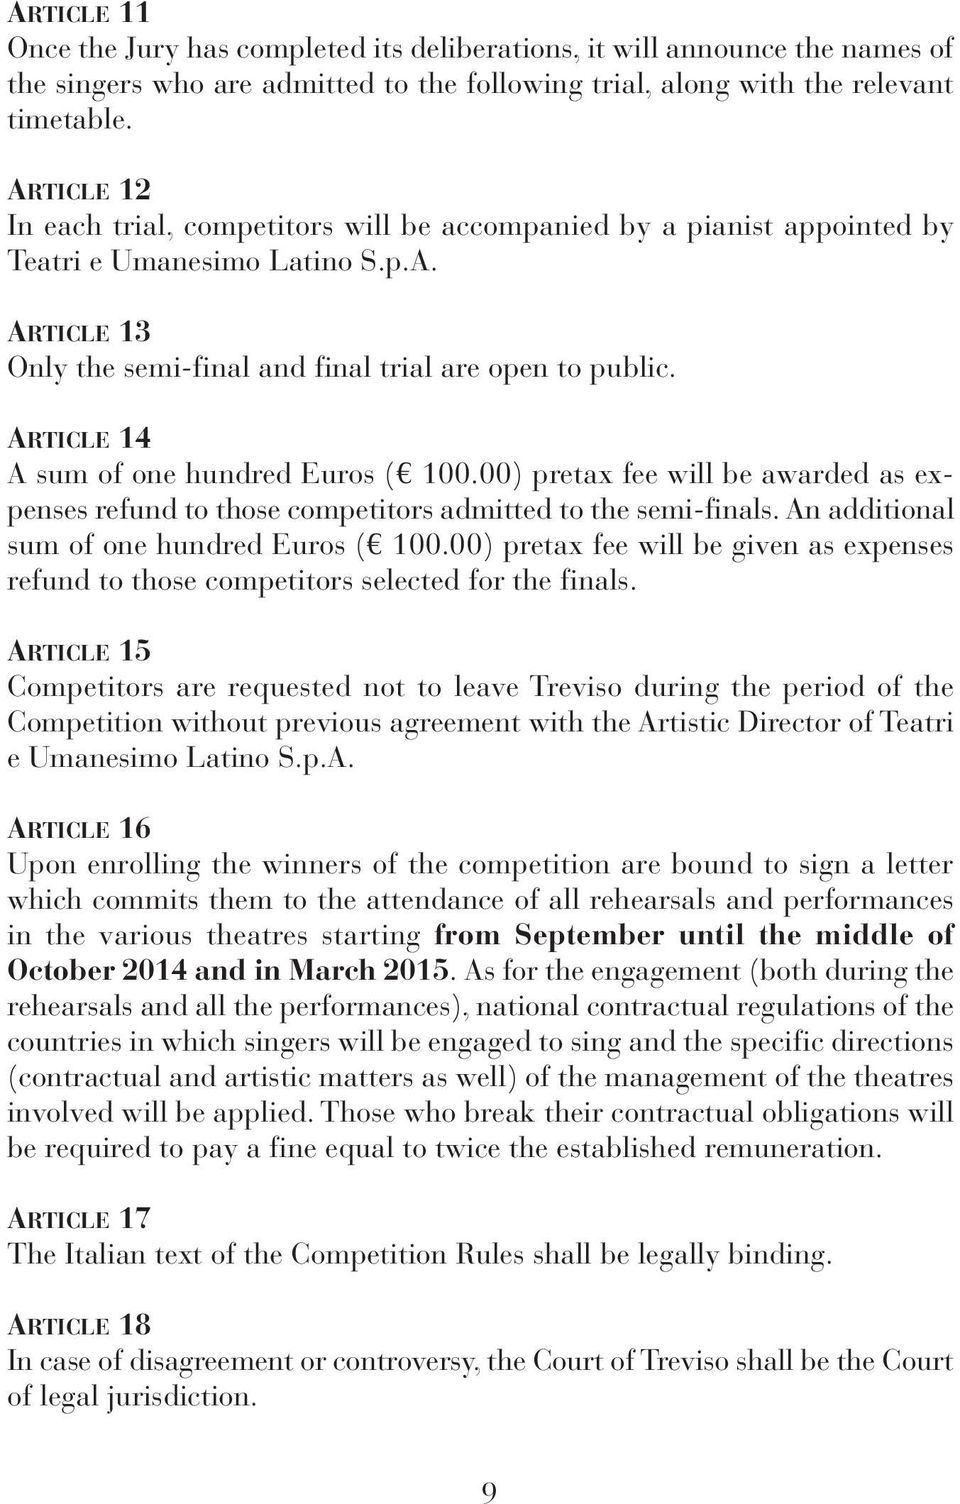 ARTiCLe 14 A sum of one hundred Euros ( 100.00) pretax fee will be awarded as expenses refund to those competitors admitted to the semi-finals. An additional sum of one hundred Euros ( 100.